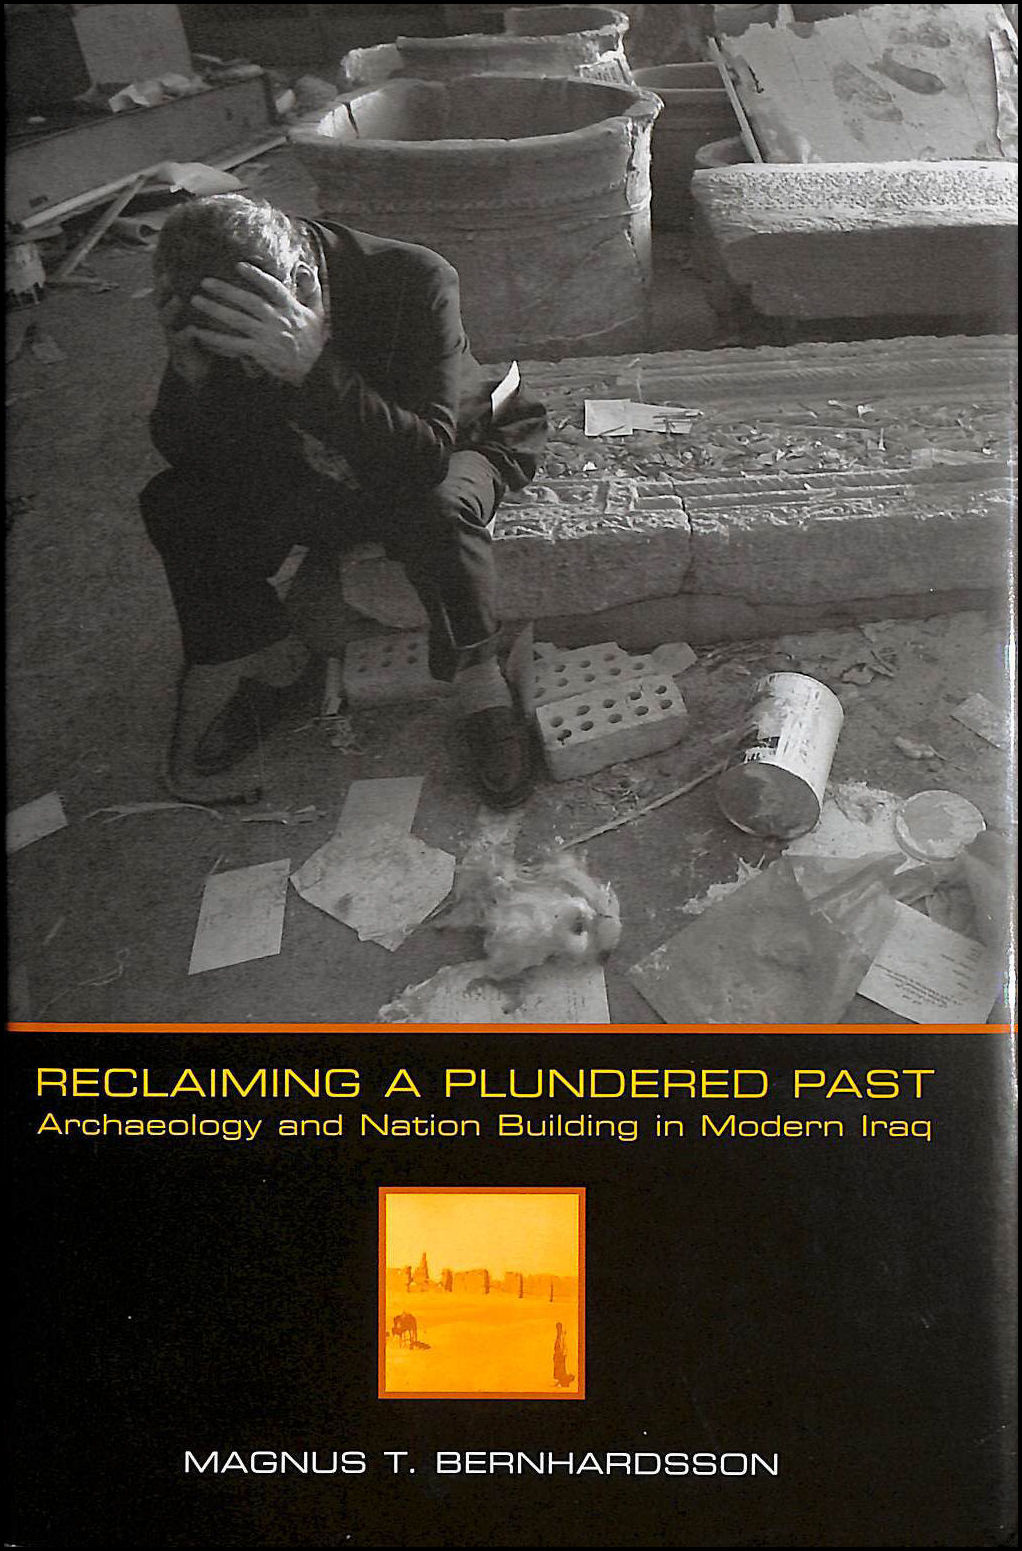 Reclaiming a Plundered Past: Archaeology and Nation Building in Modern Iraq, Bernhardsson, Magnus Thorkell